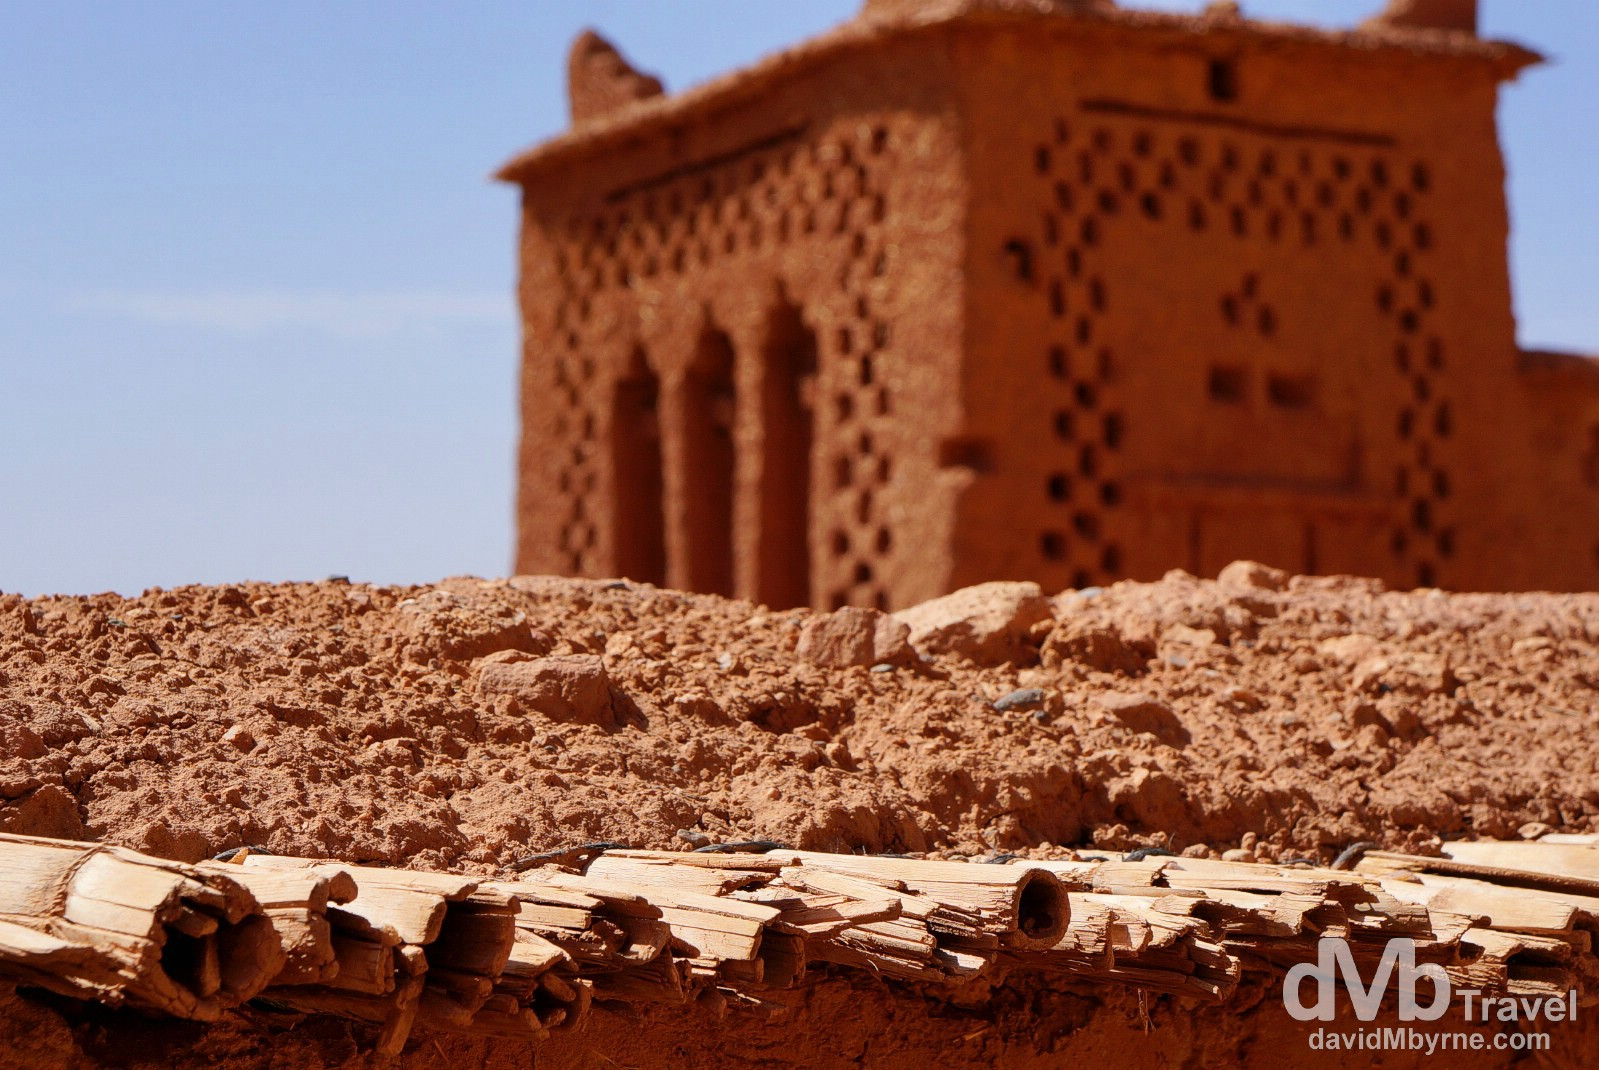 A section of the walls of the Ait Benhaddou, southern Morocco. May 14th, 2014.